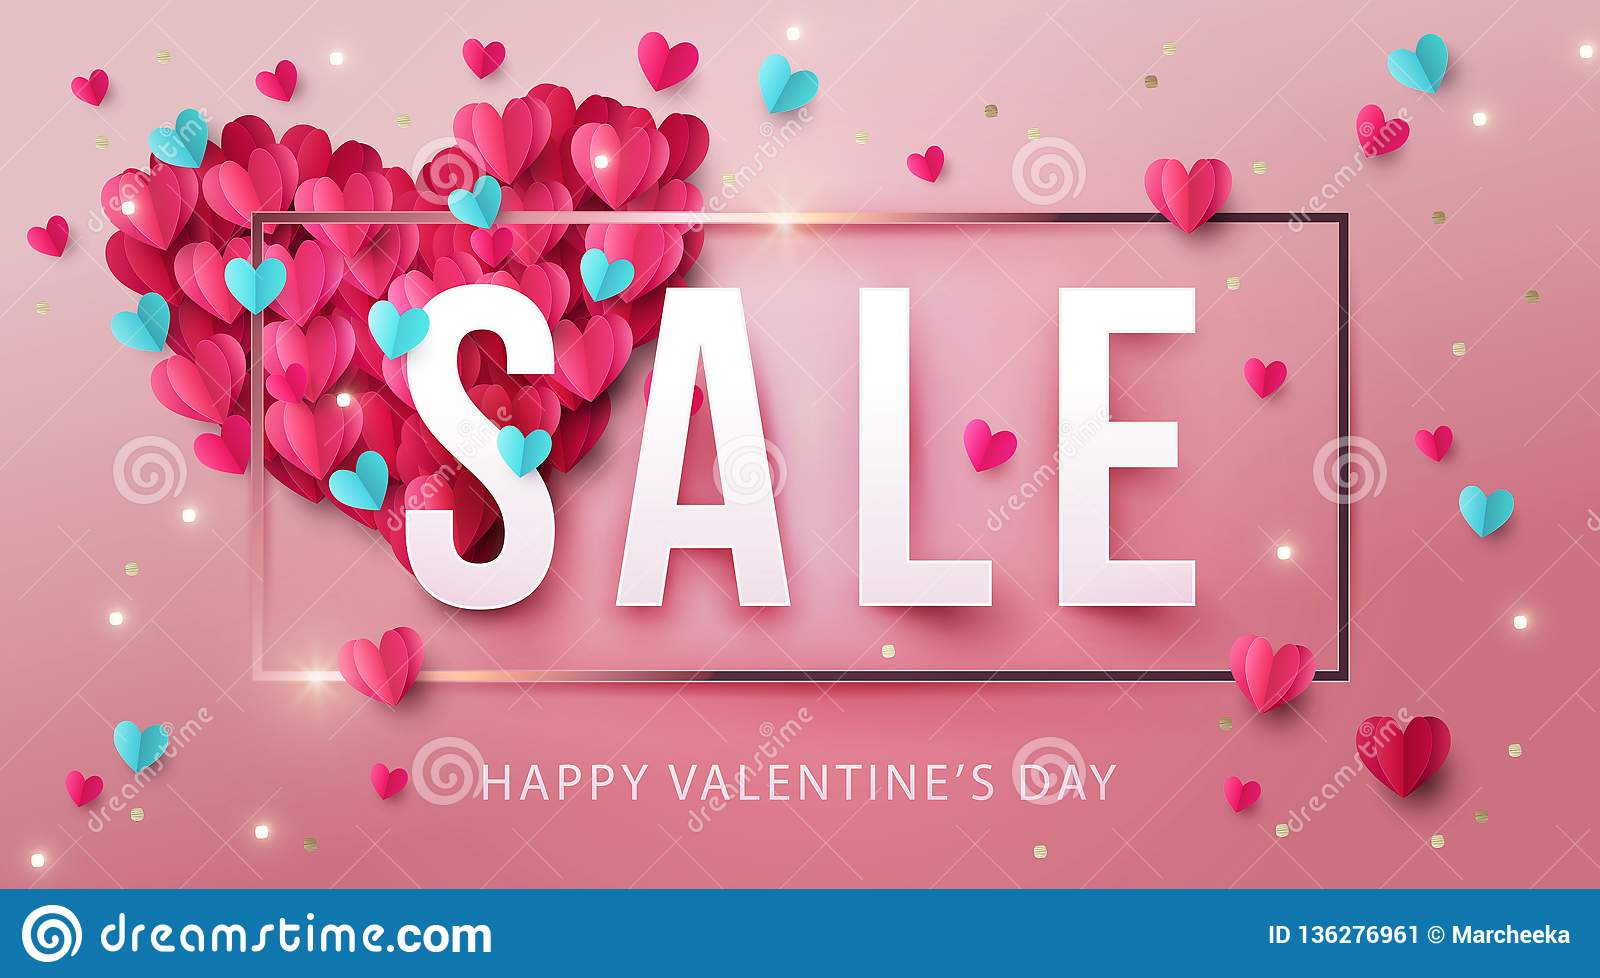 Happy Valentines Day Sale Banner, poster or flyer design with big heart made of pink and blue origami hearts